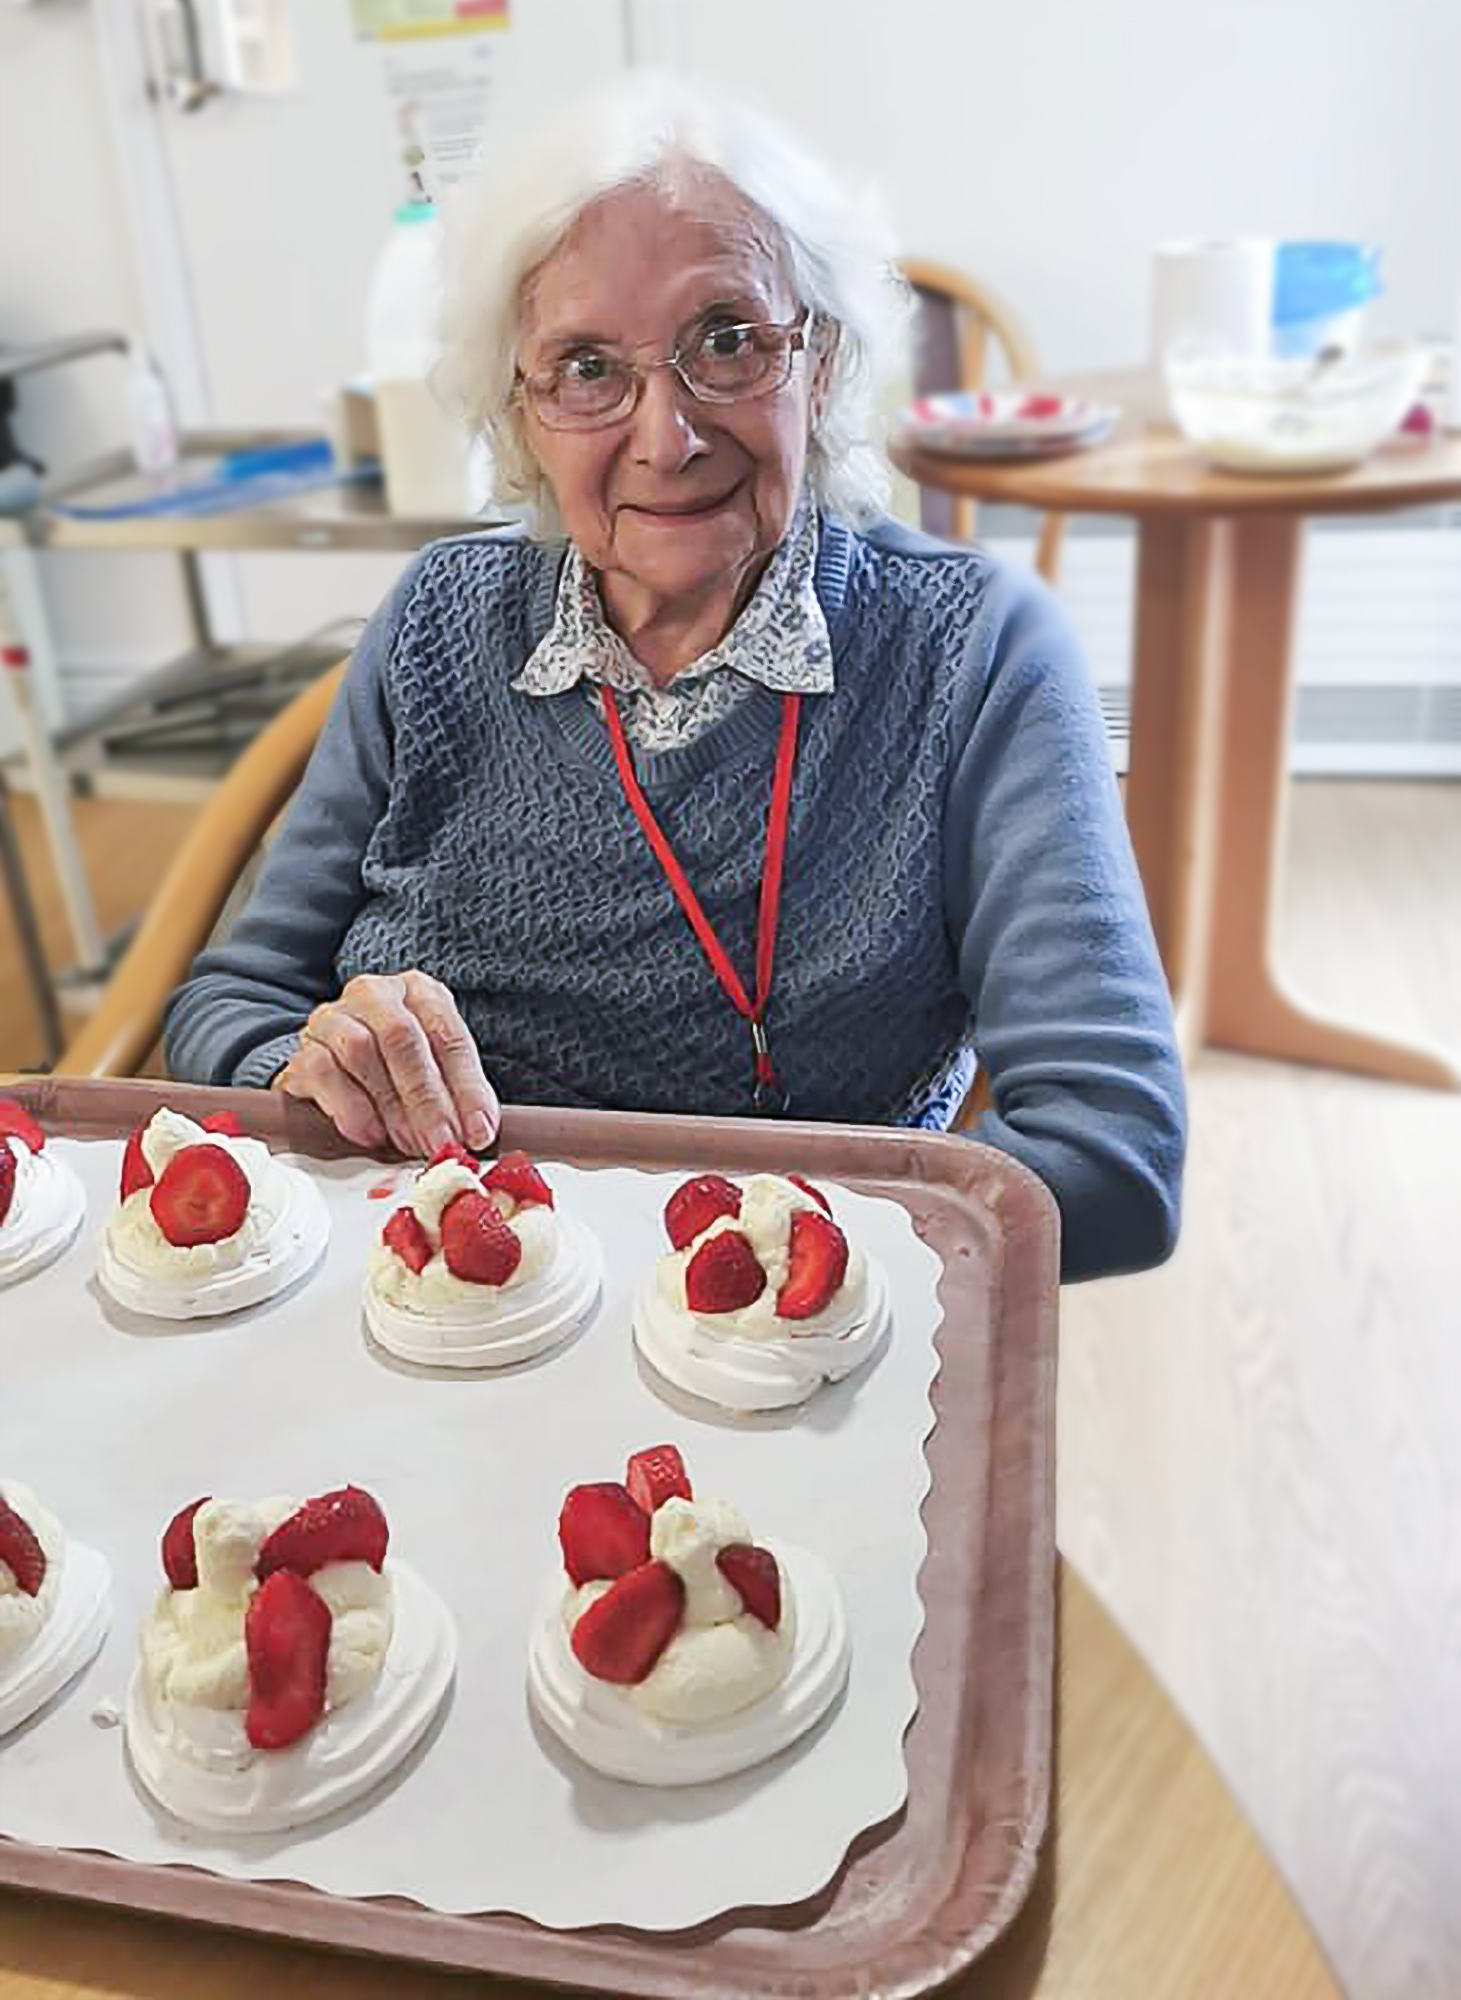 A care home resident making pavlova